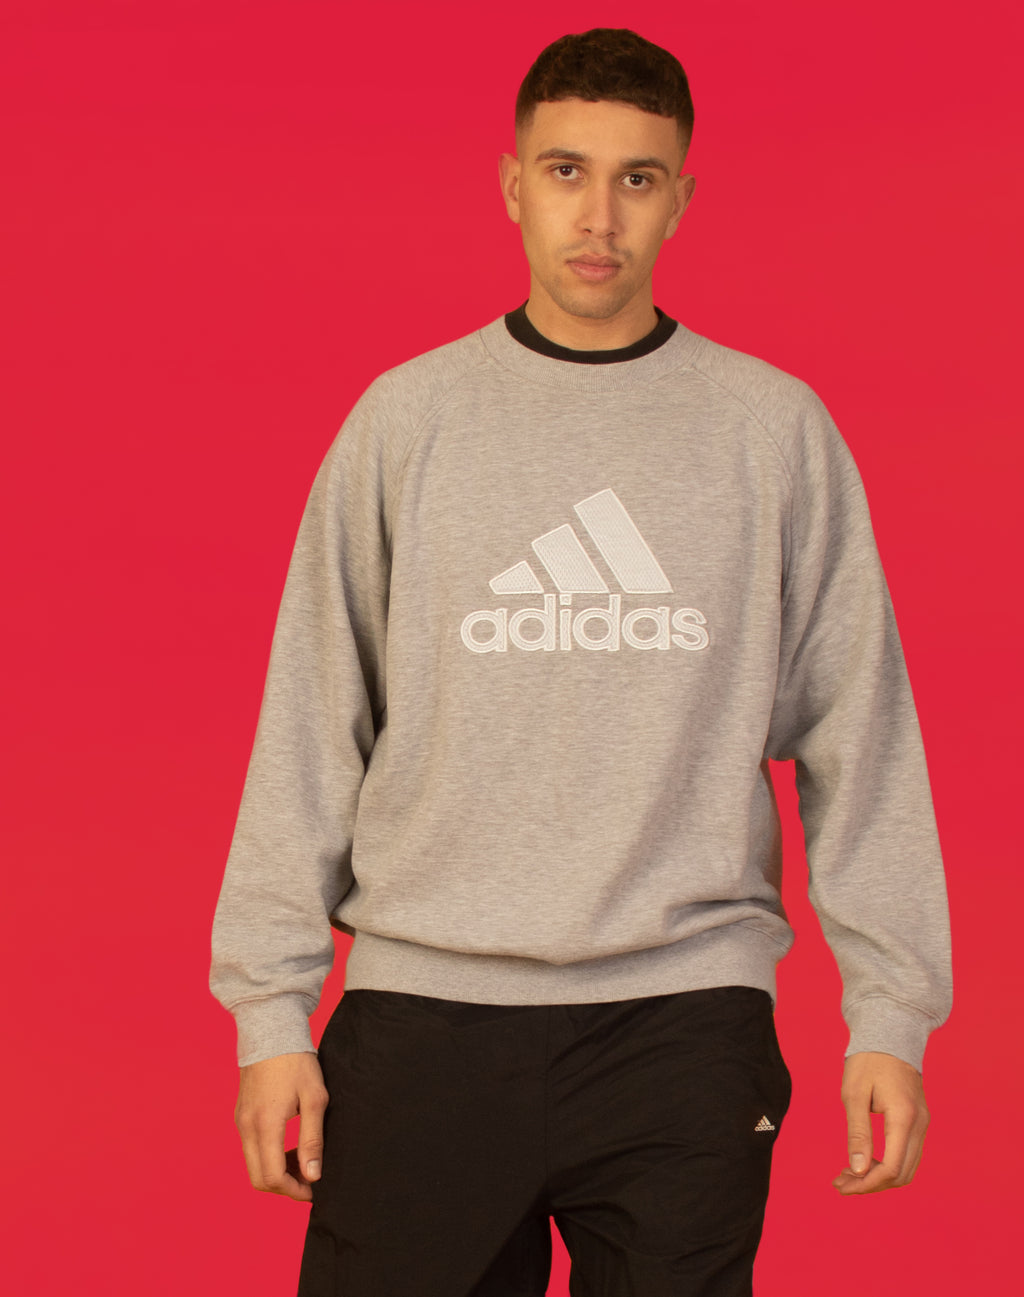 ADIDAS GREY SWEATSHIRT